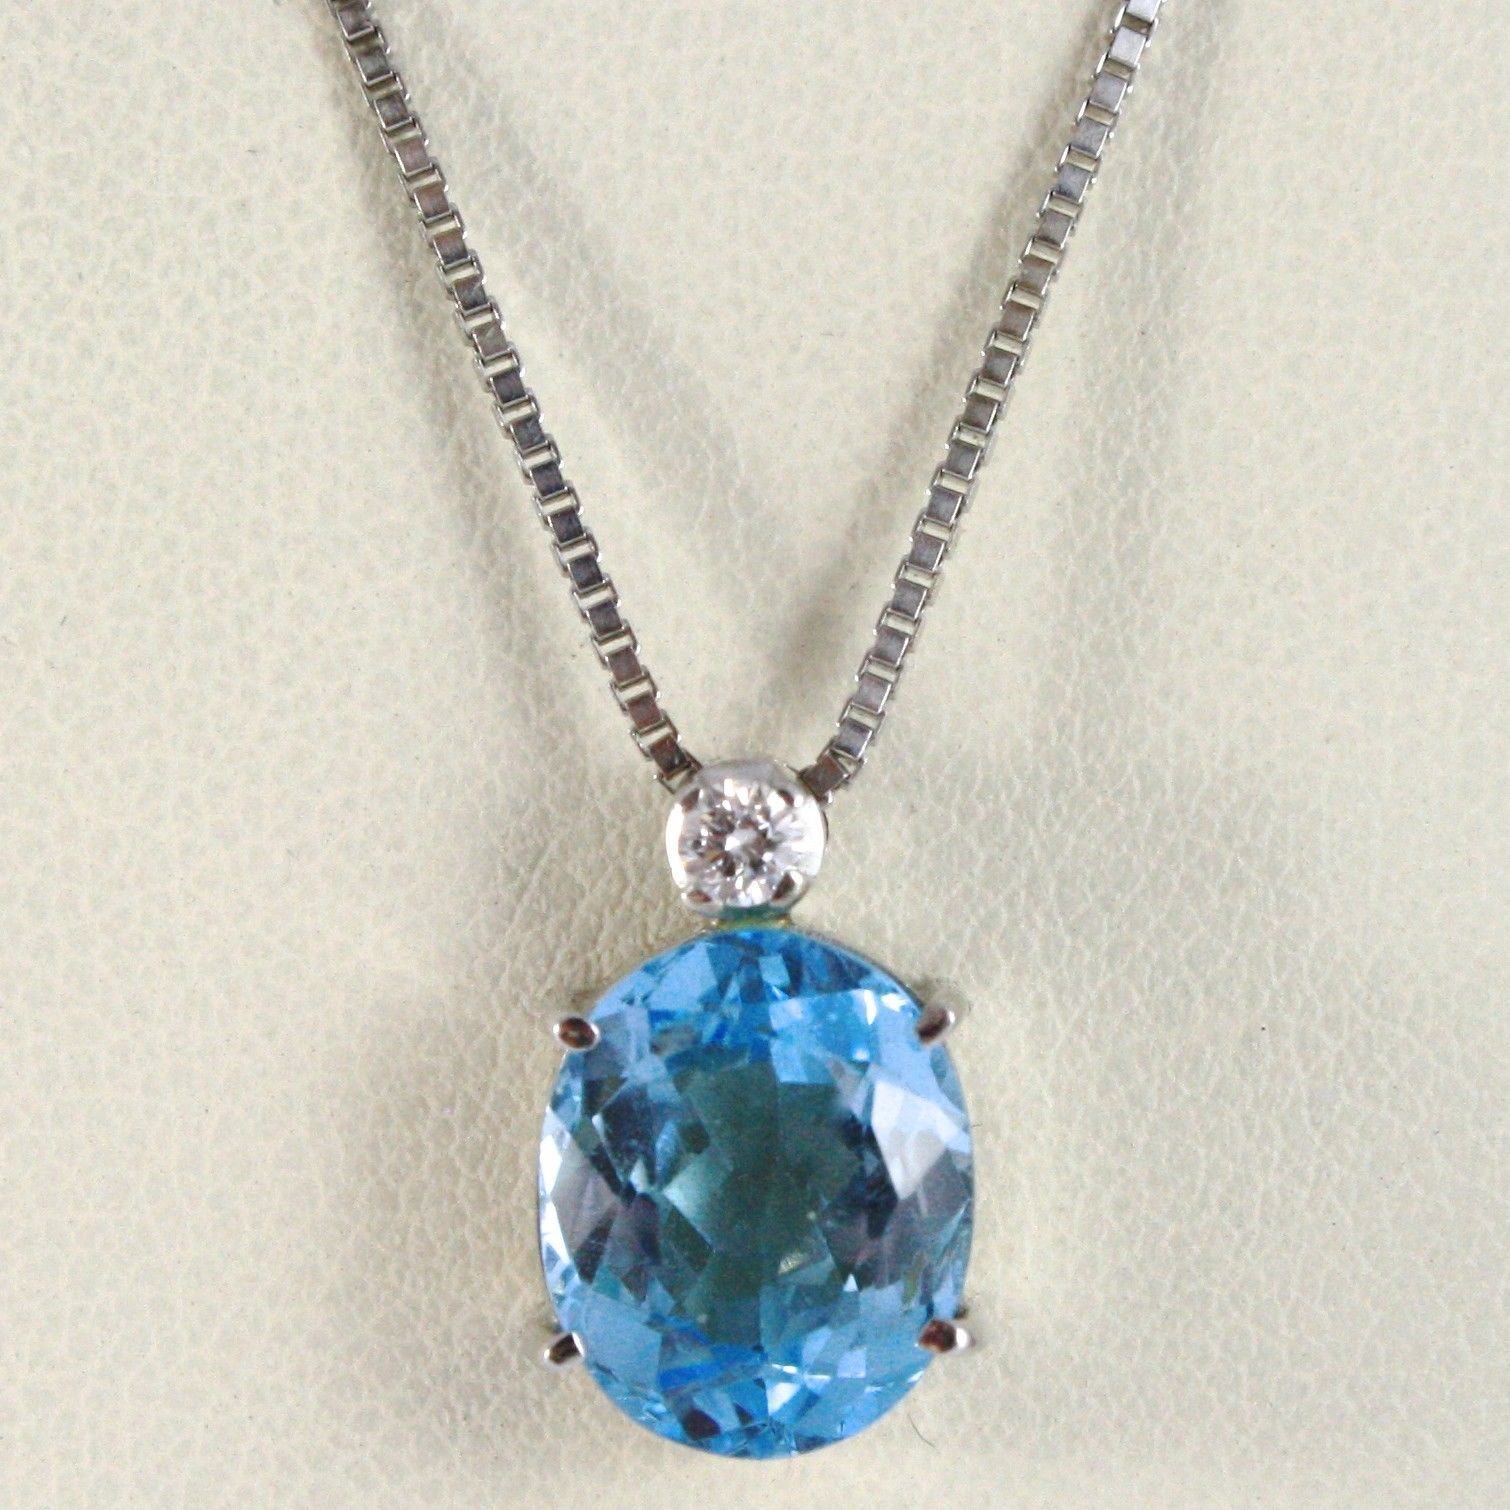 NECKLACE WHITE GOLD 750 - 18K, PENDANT BLUE TOPAZ OVAL AND DIAMOND CT 0.10